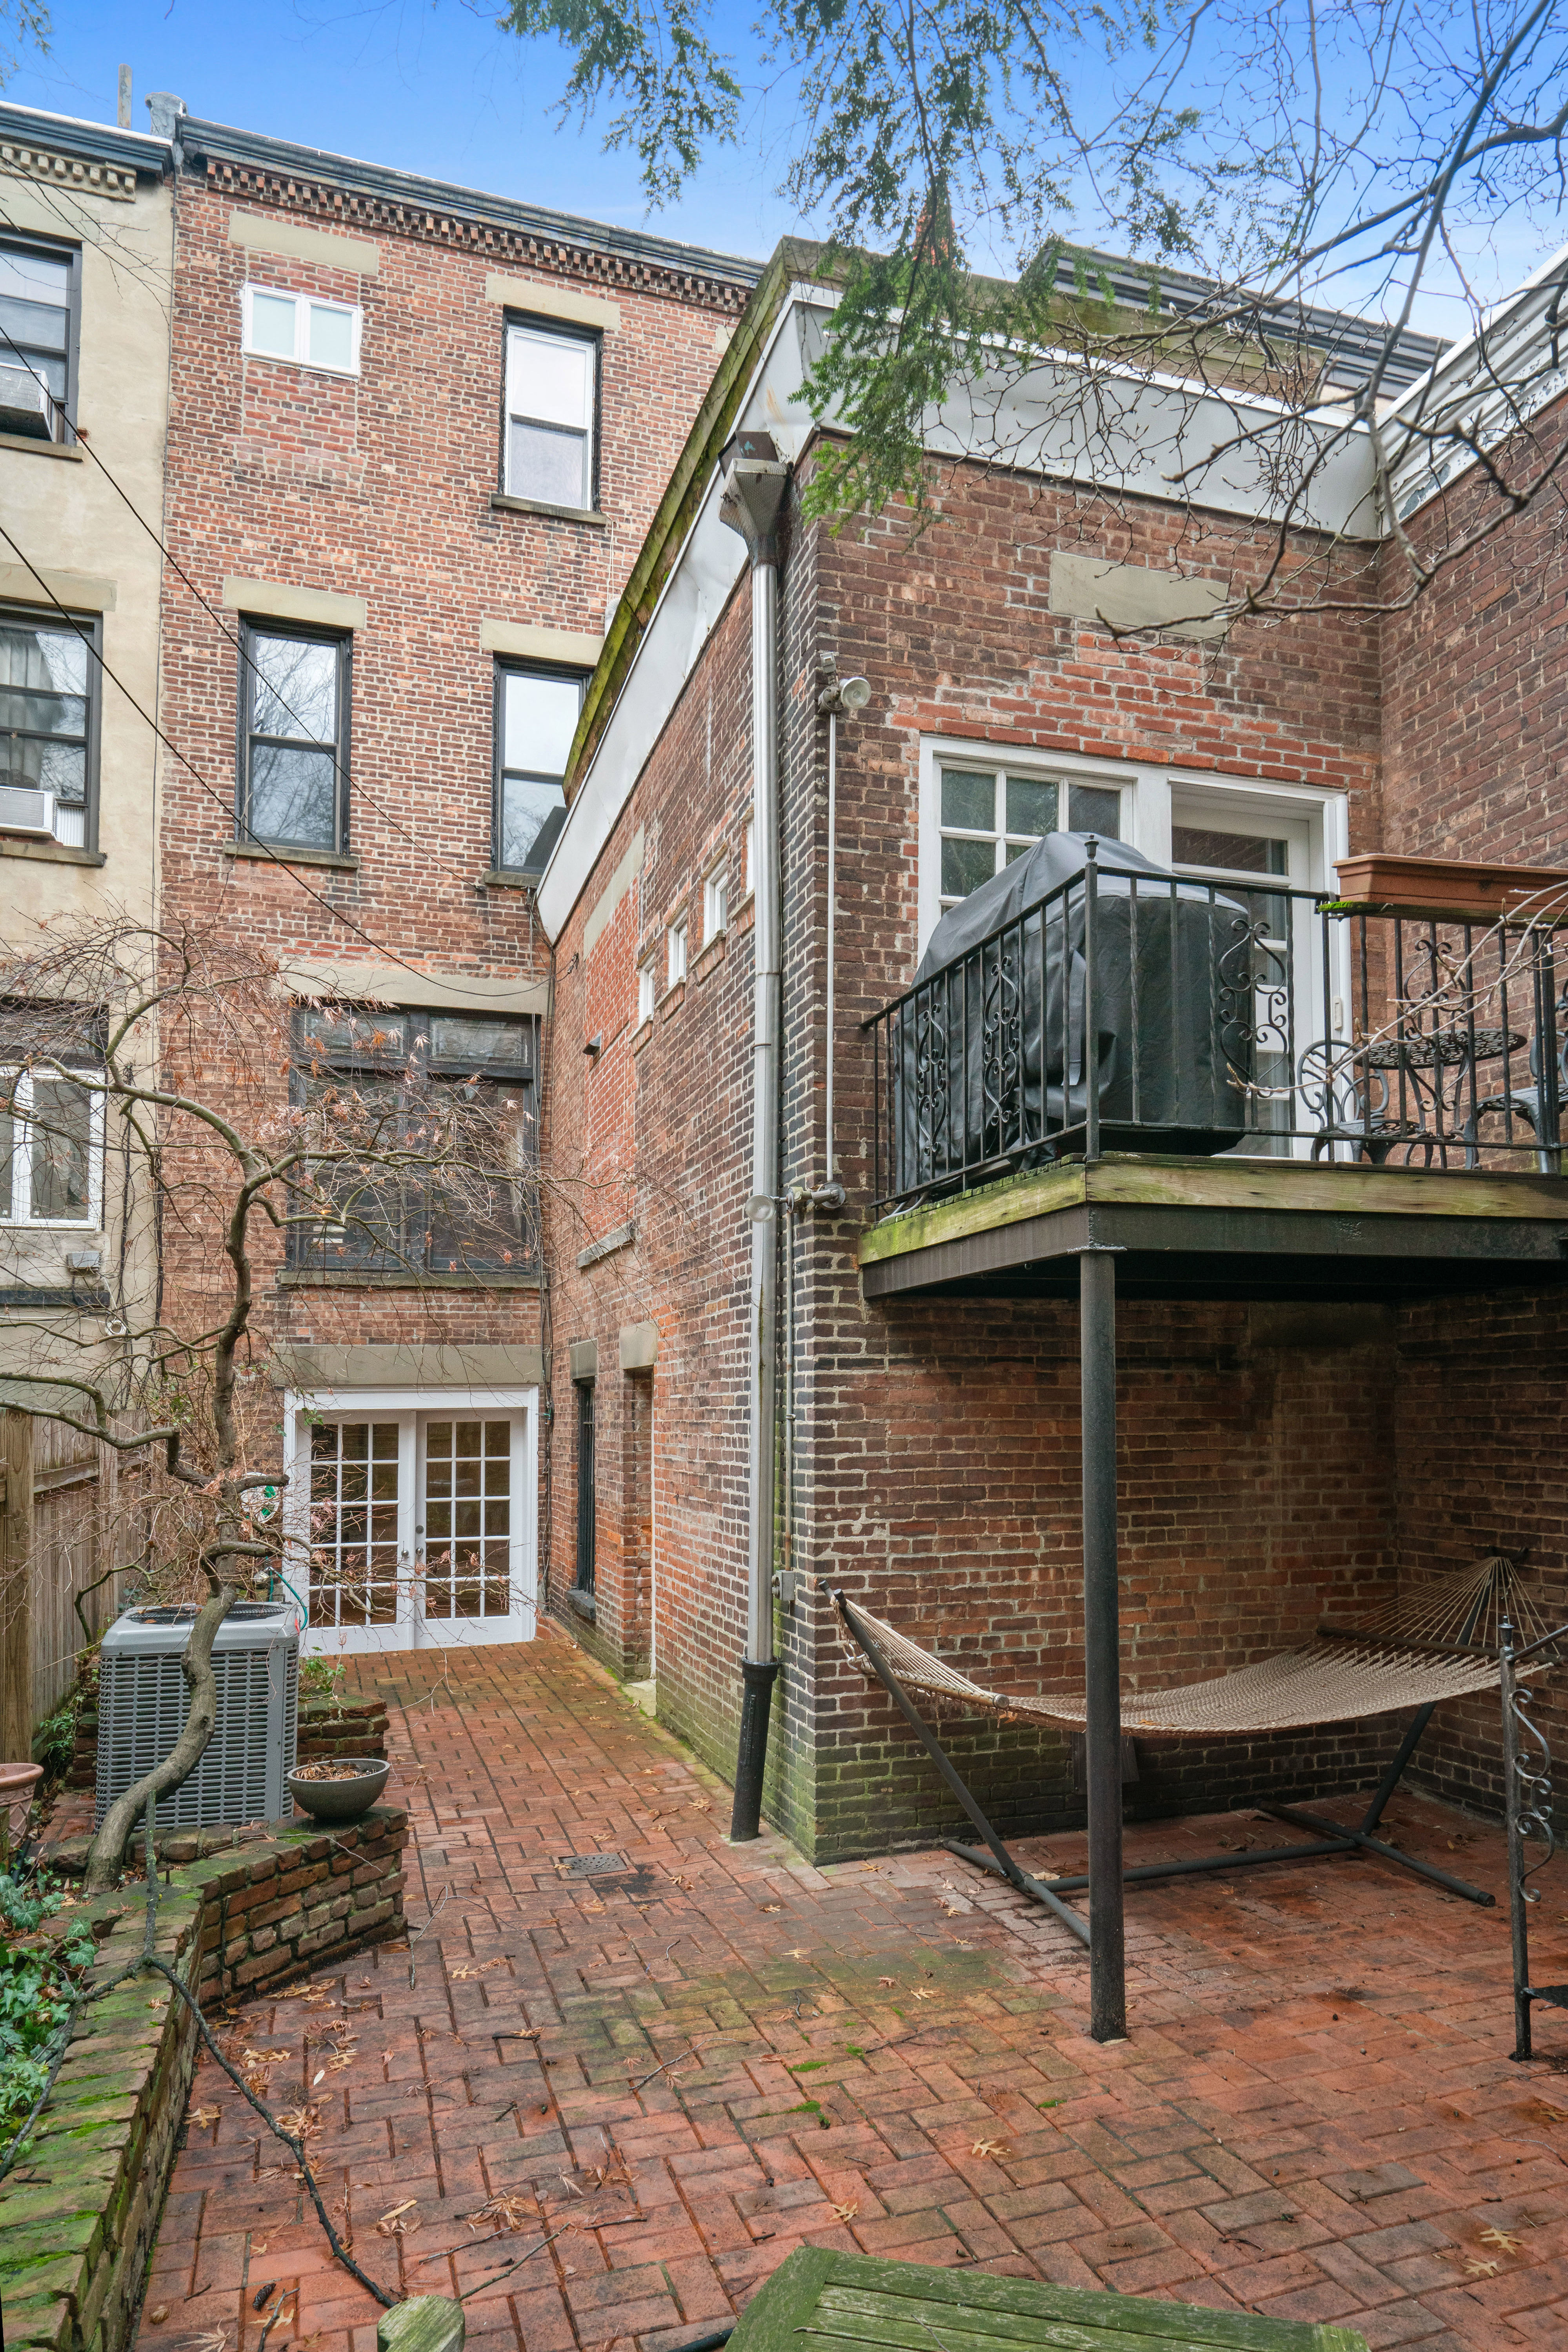 594 2nd St Photo 3 - BROWNSTONER-LISTING-47512a55ccfbbeb19b0a8fb315f62163